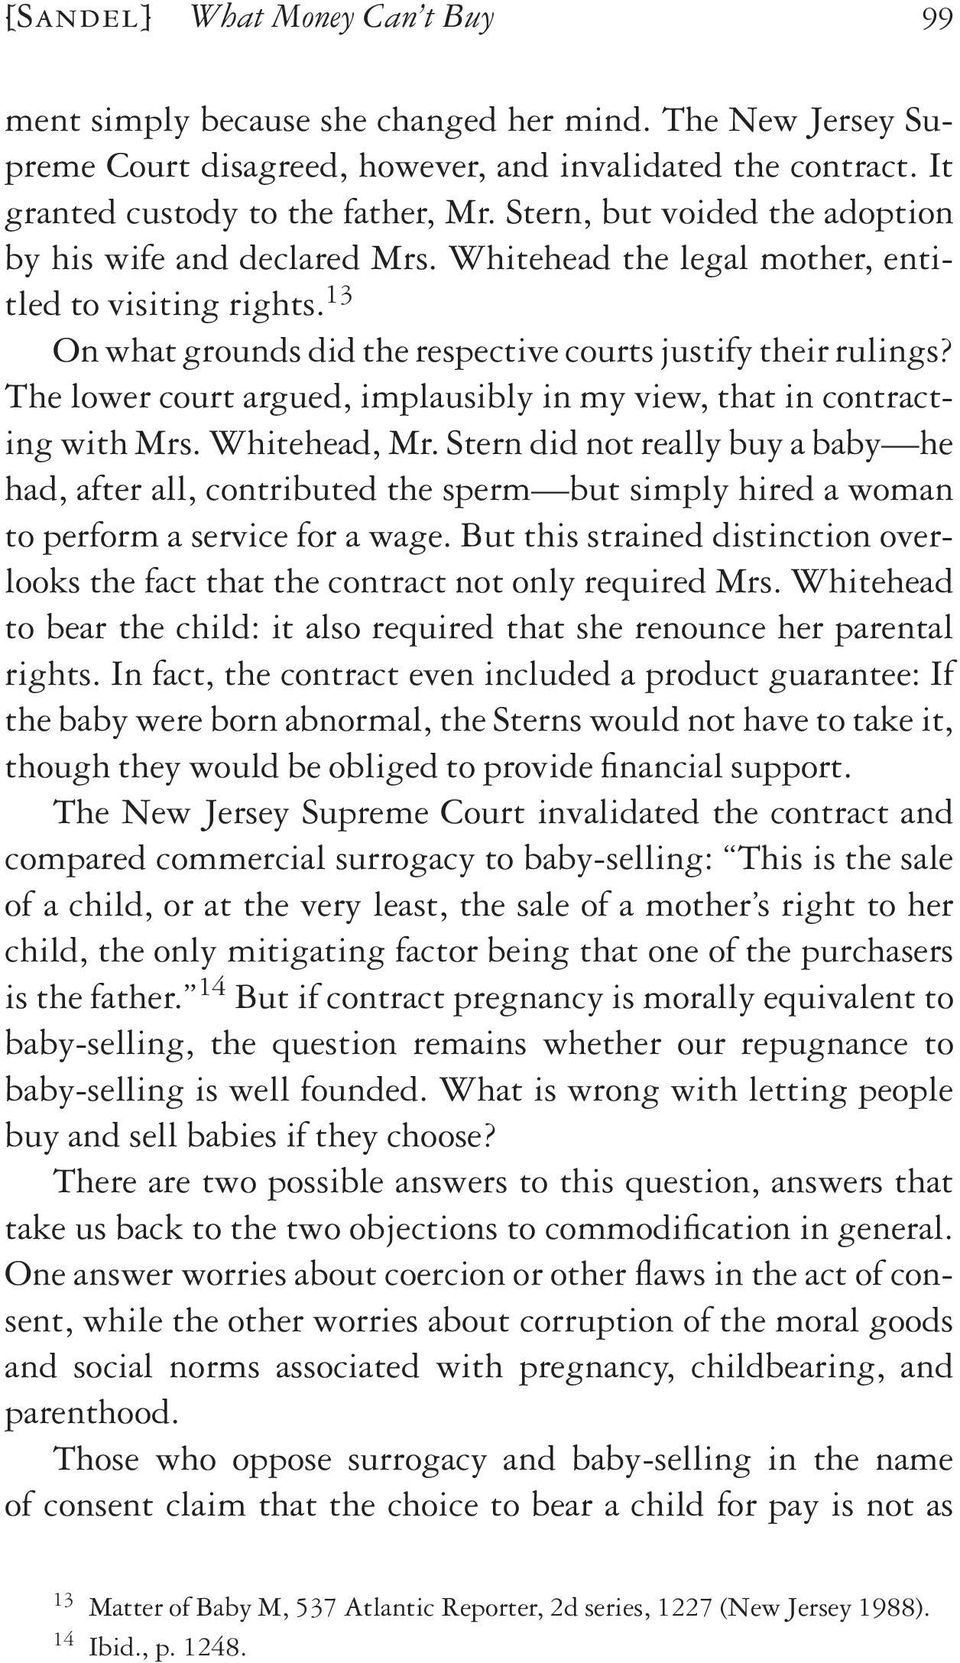 The lower court argued, implausibly in my view, that in contracting with Mrs. Whitehead, Mr.